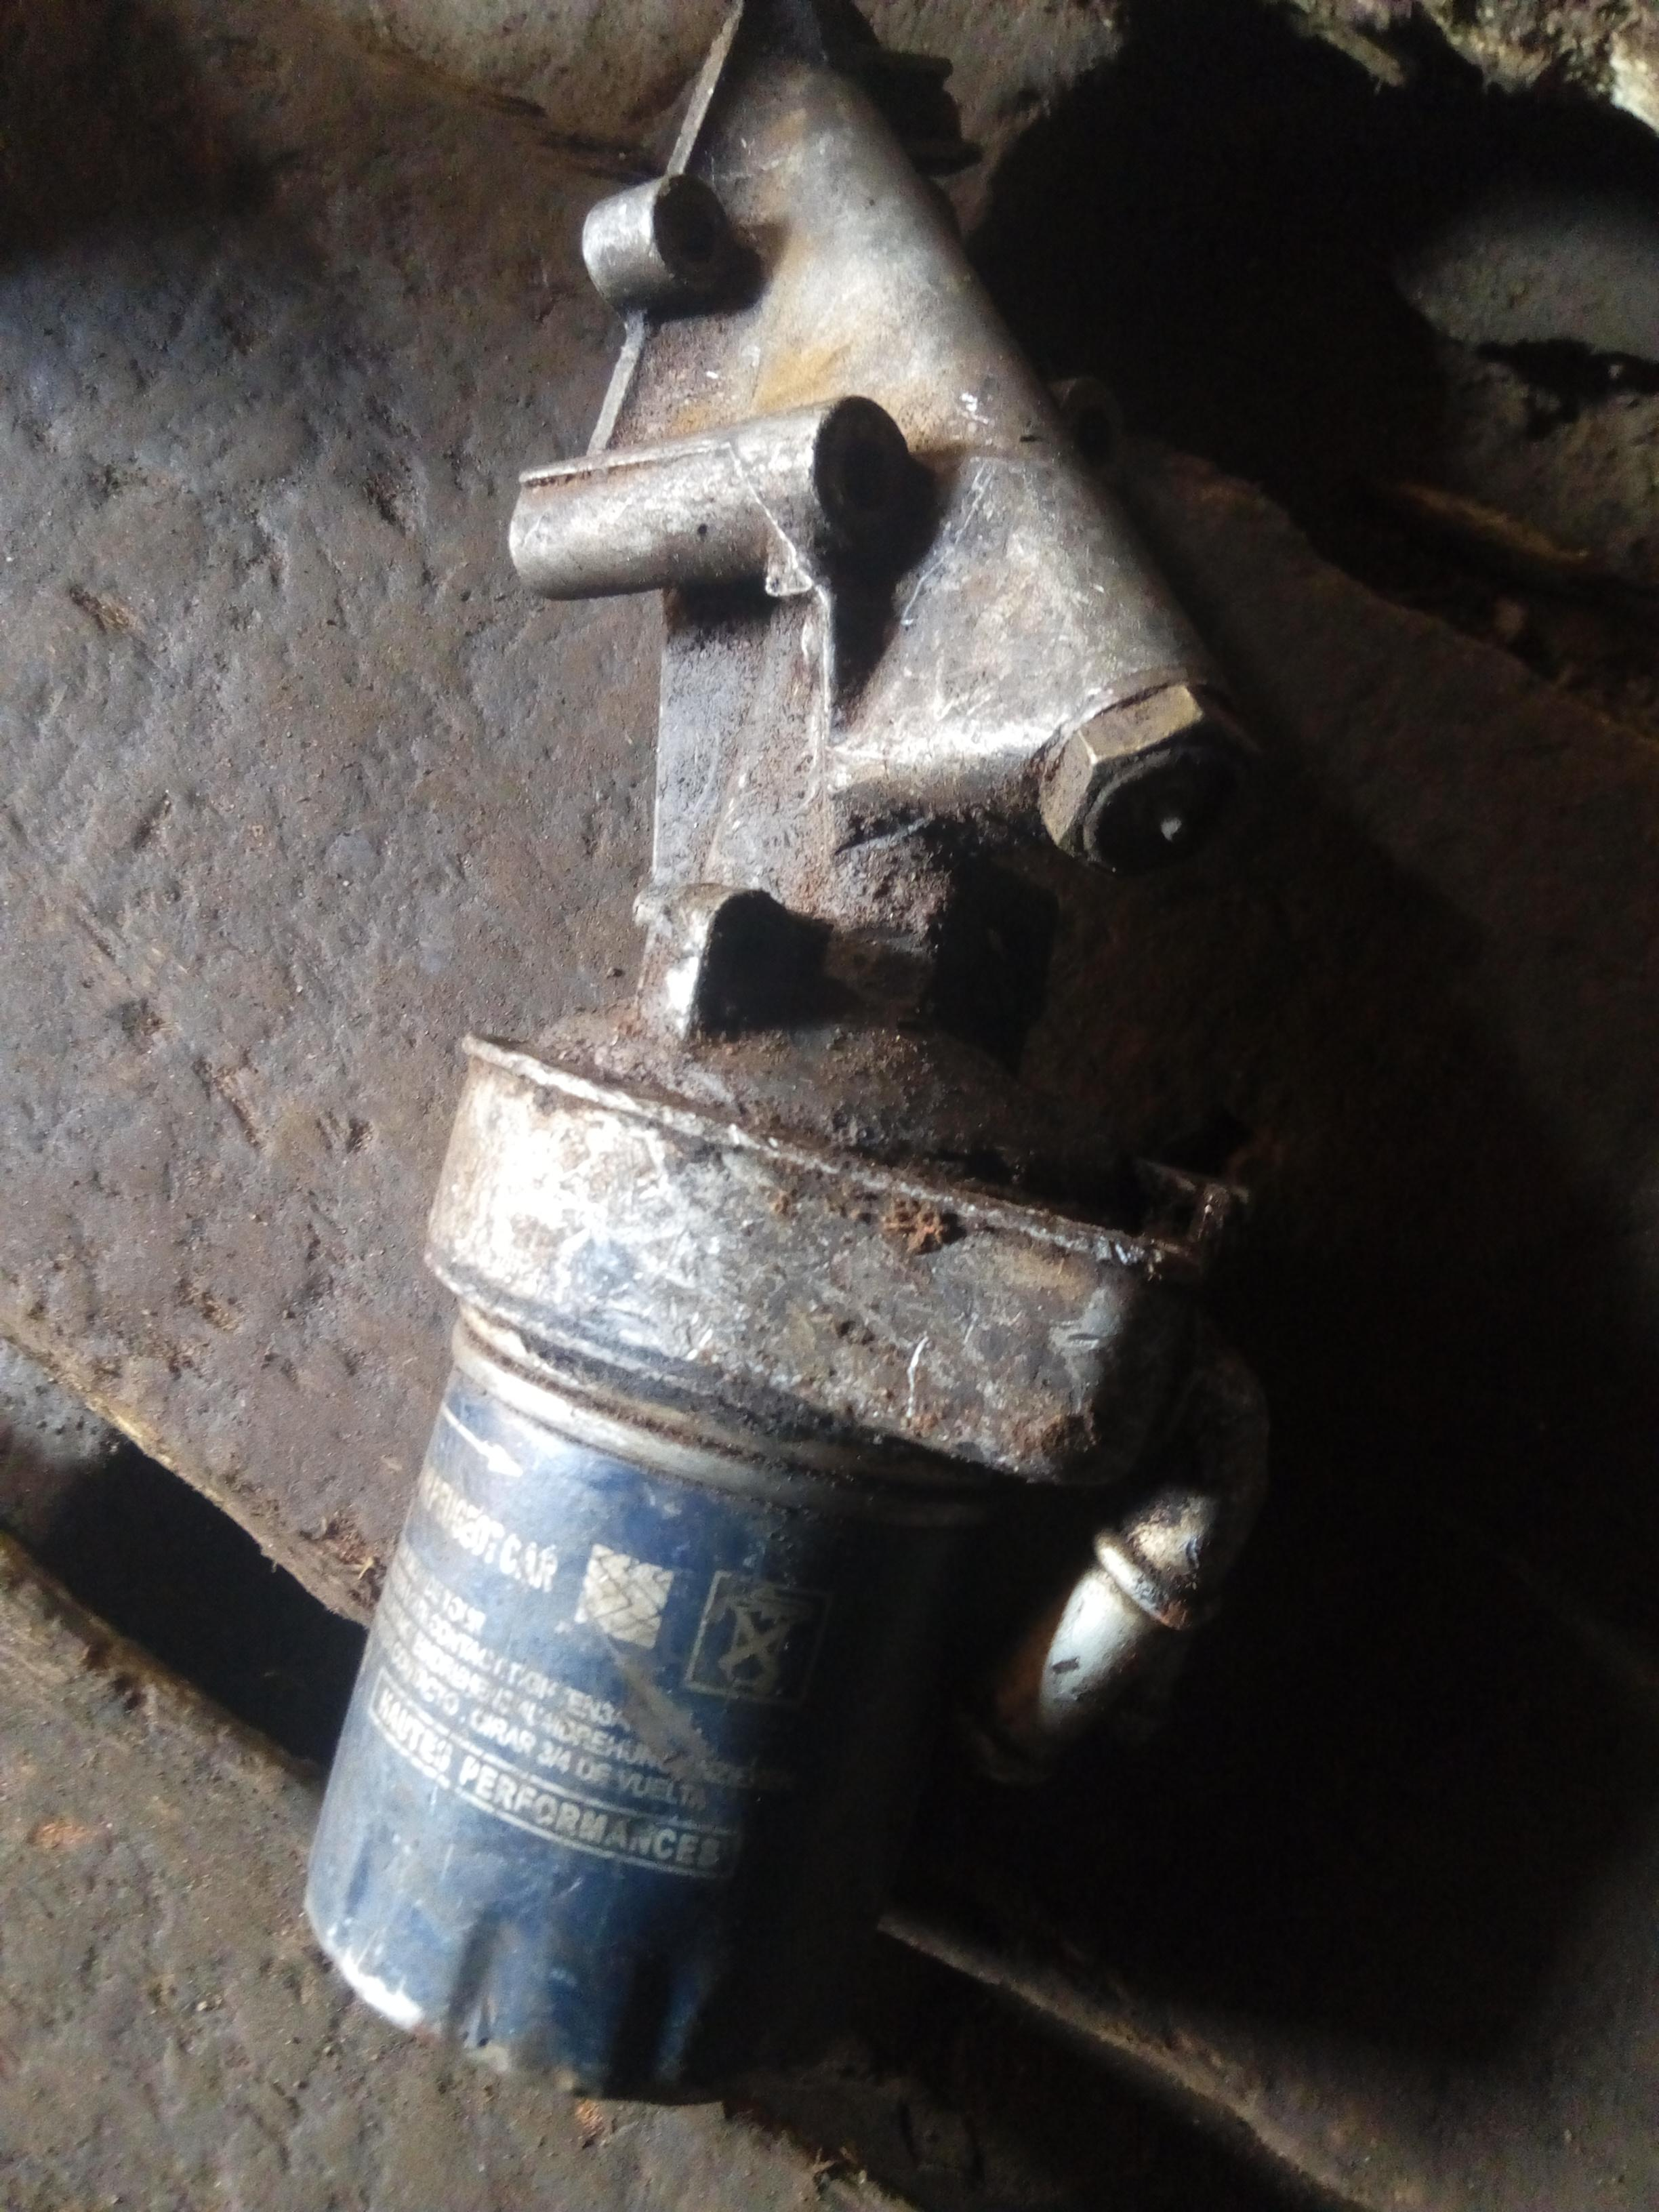 AMERICAN USED OIL FILTER